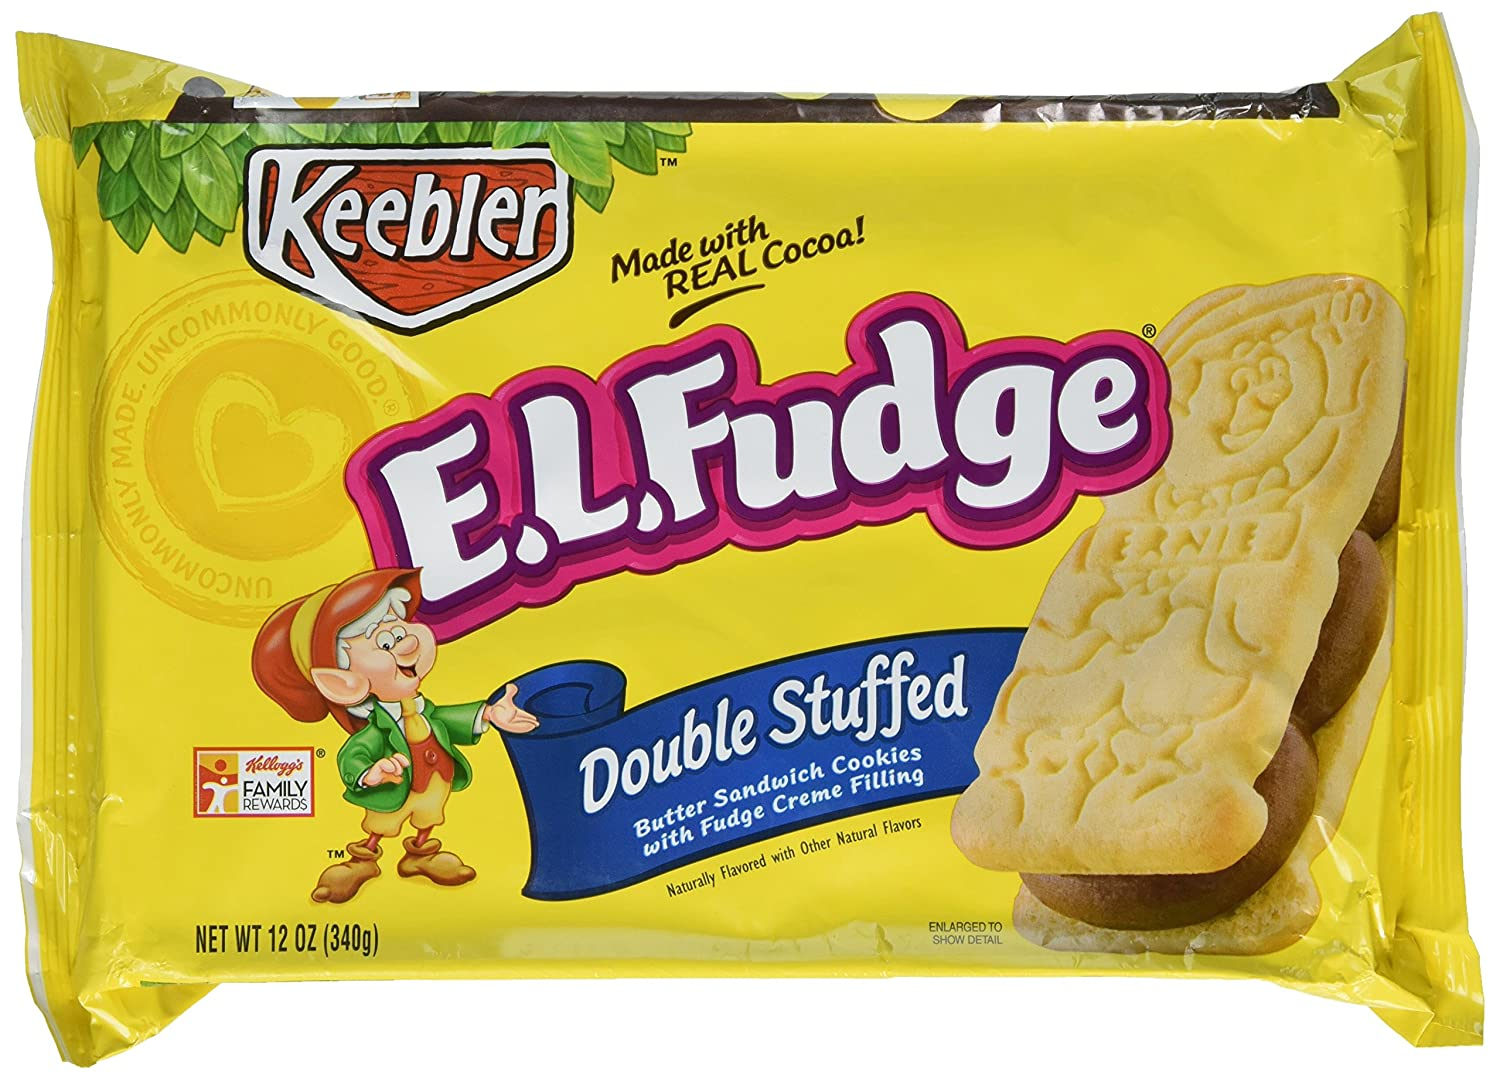 Keebler elf double stuff cookies recipes - Cookie cooks recipes